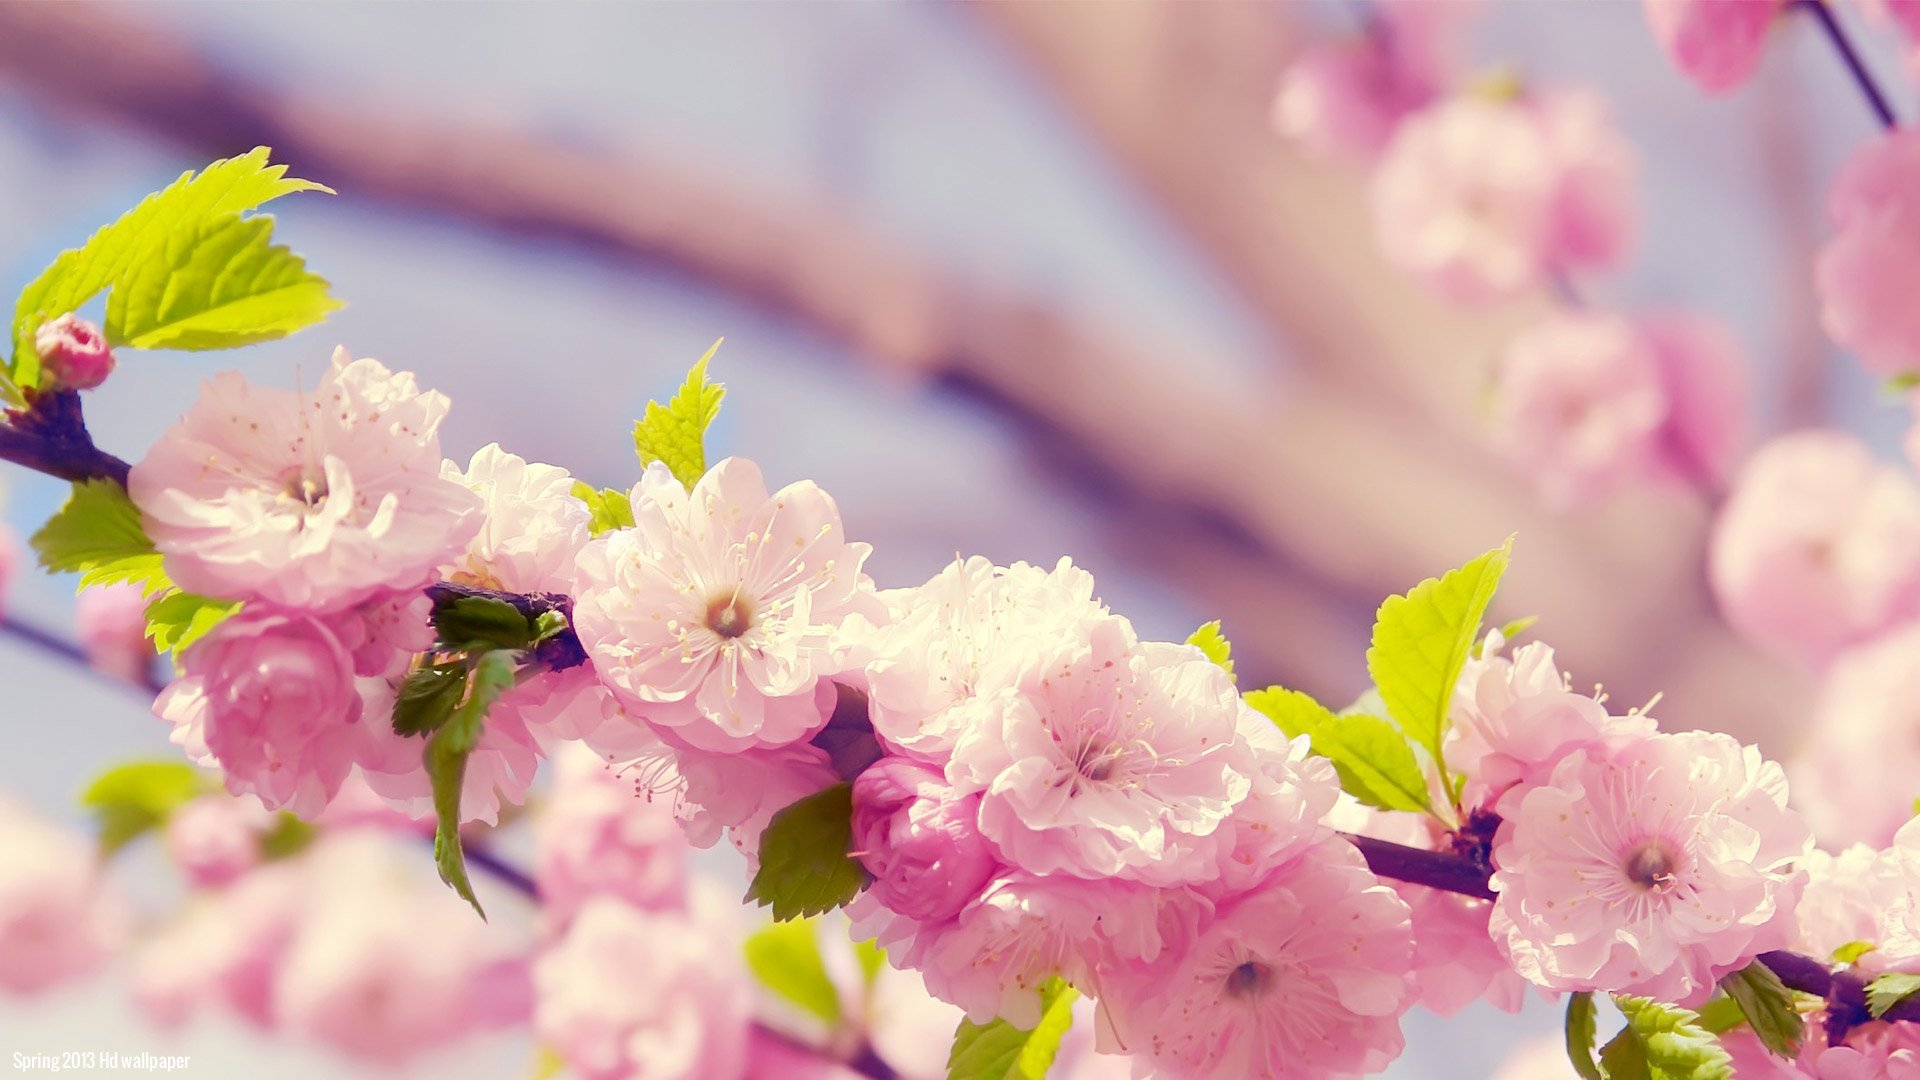 Spring Hd Wallpapers 1080p Wallpapersafari